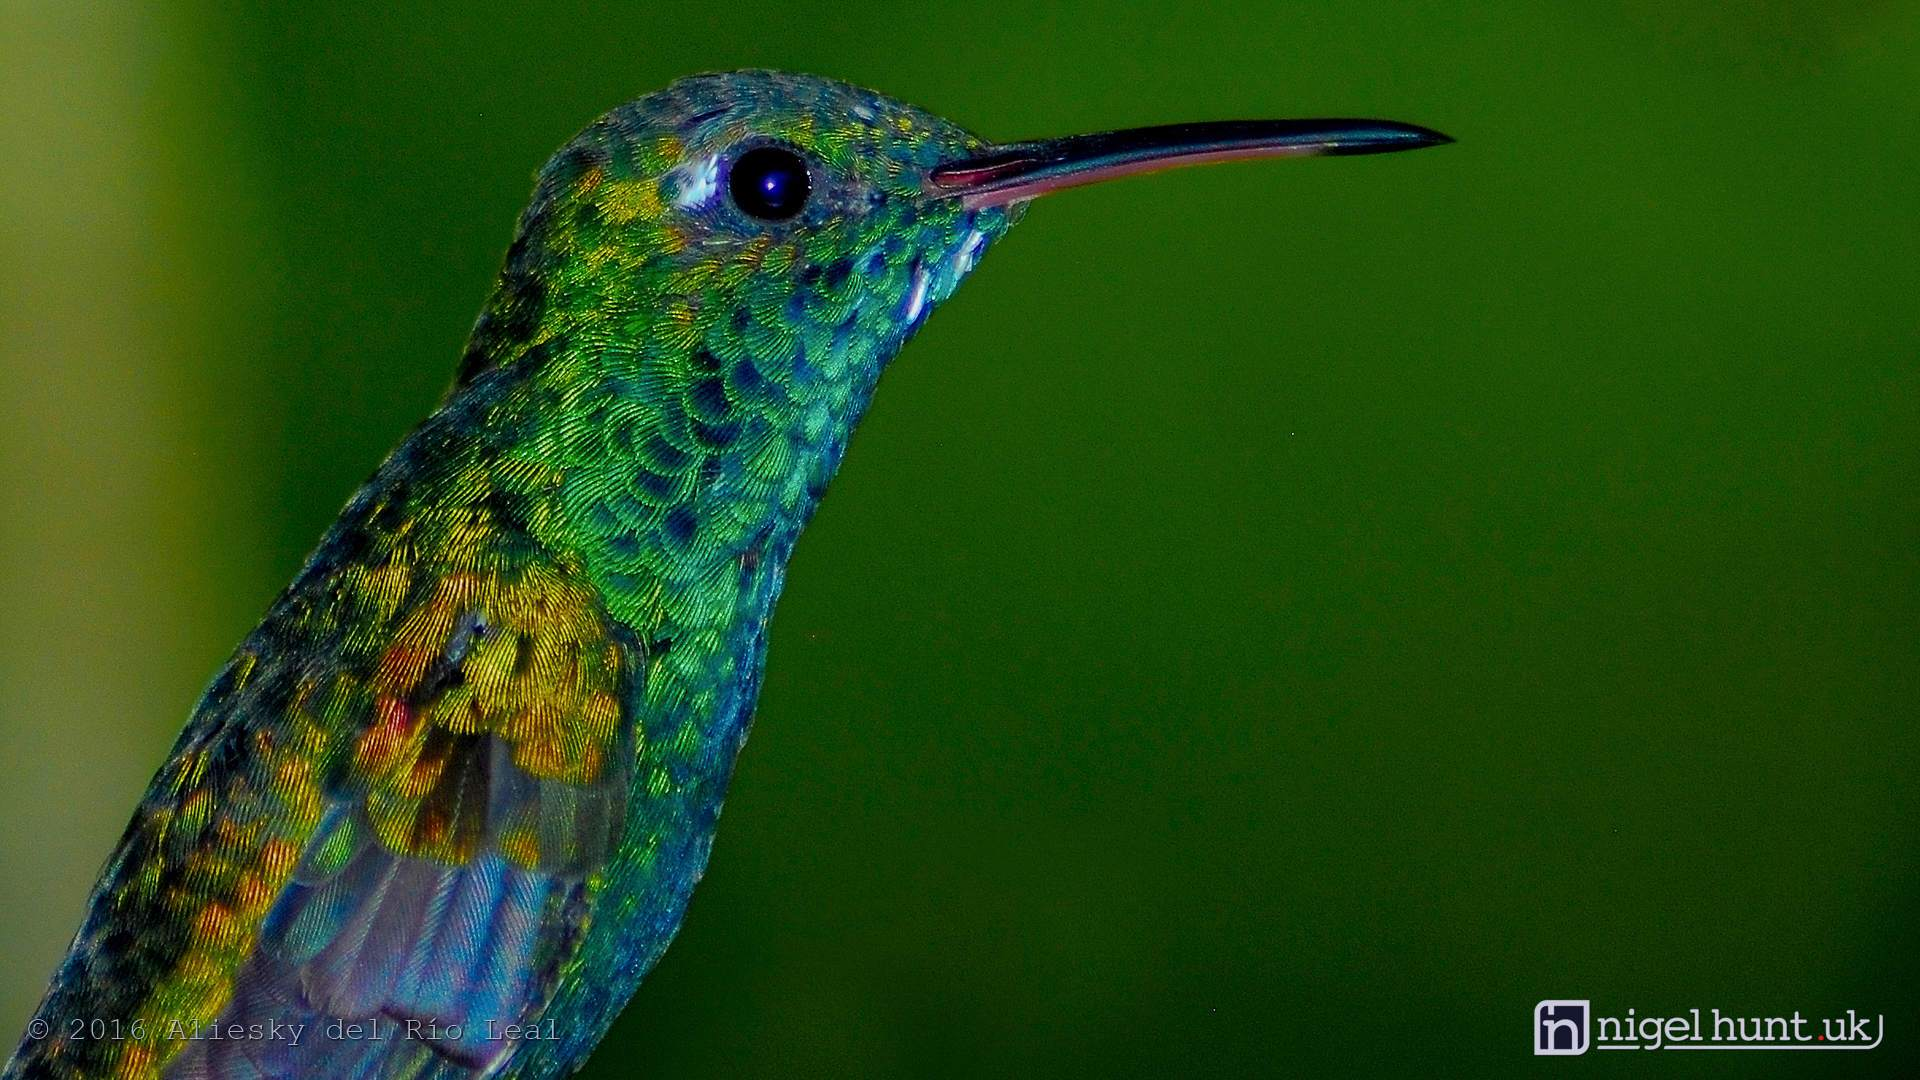 The Cuban Hummingbird